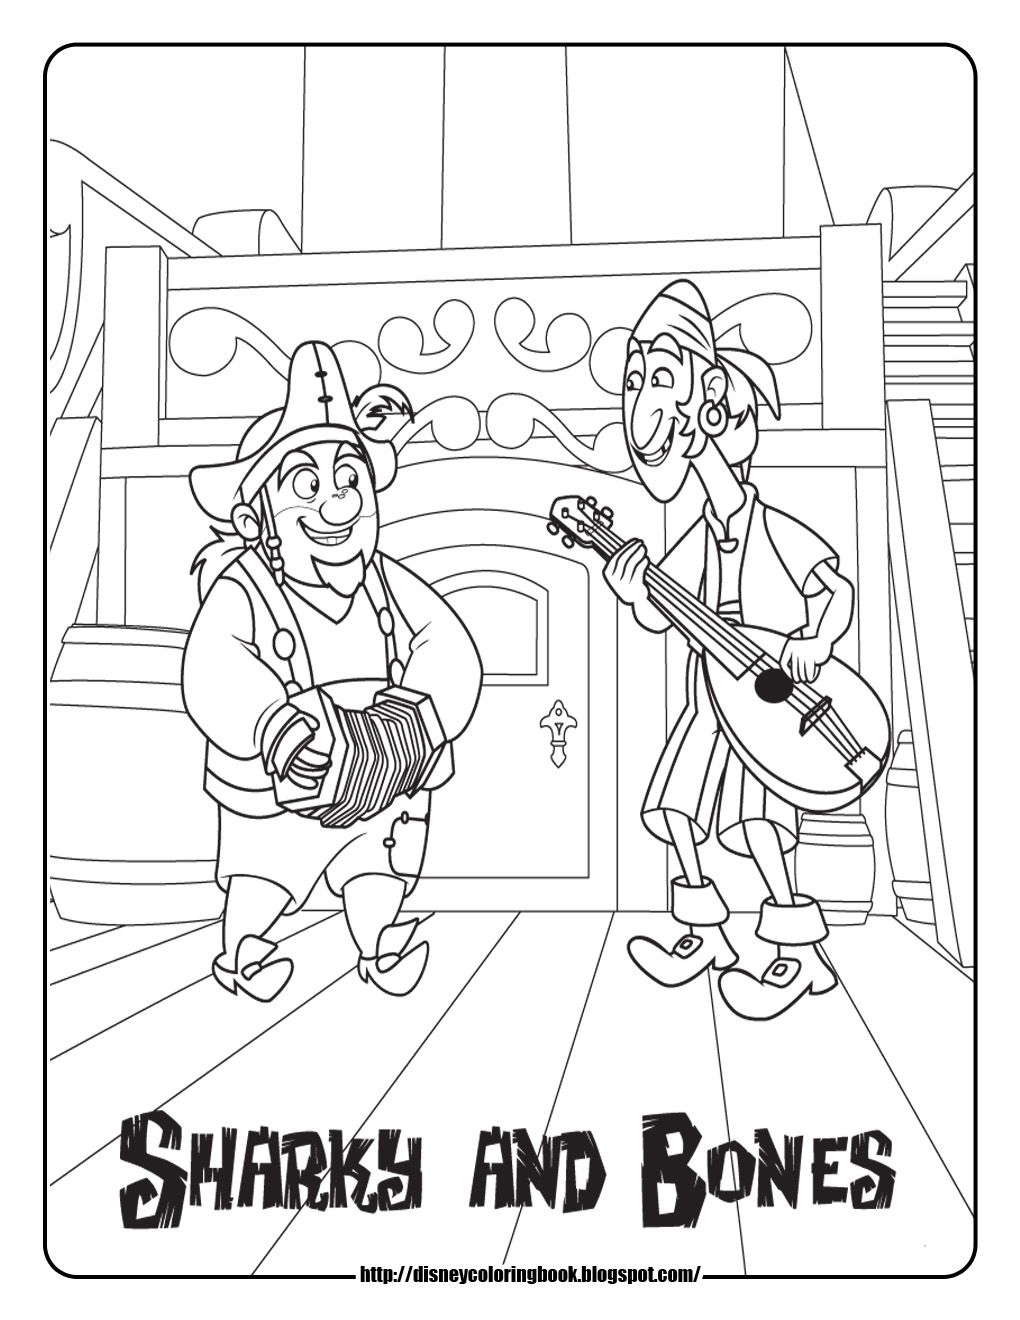 Jake And The Never Land Pirates Coloring Pages Sharky And Bones Pirate Coloring Pages Disney Coloring Pages Disney Coloring Sheets